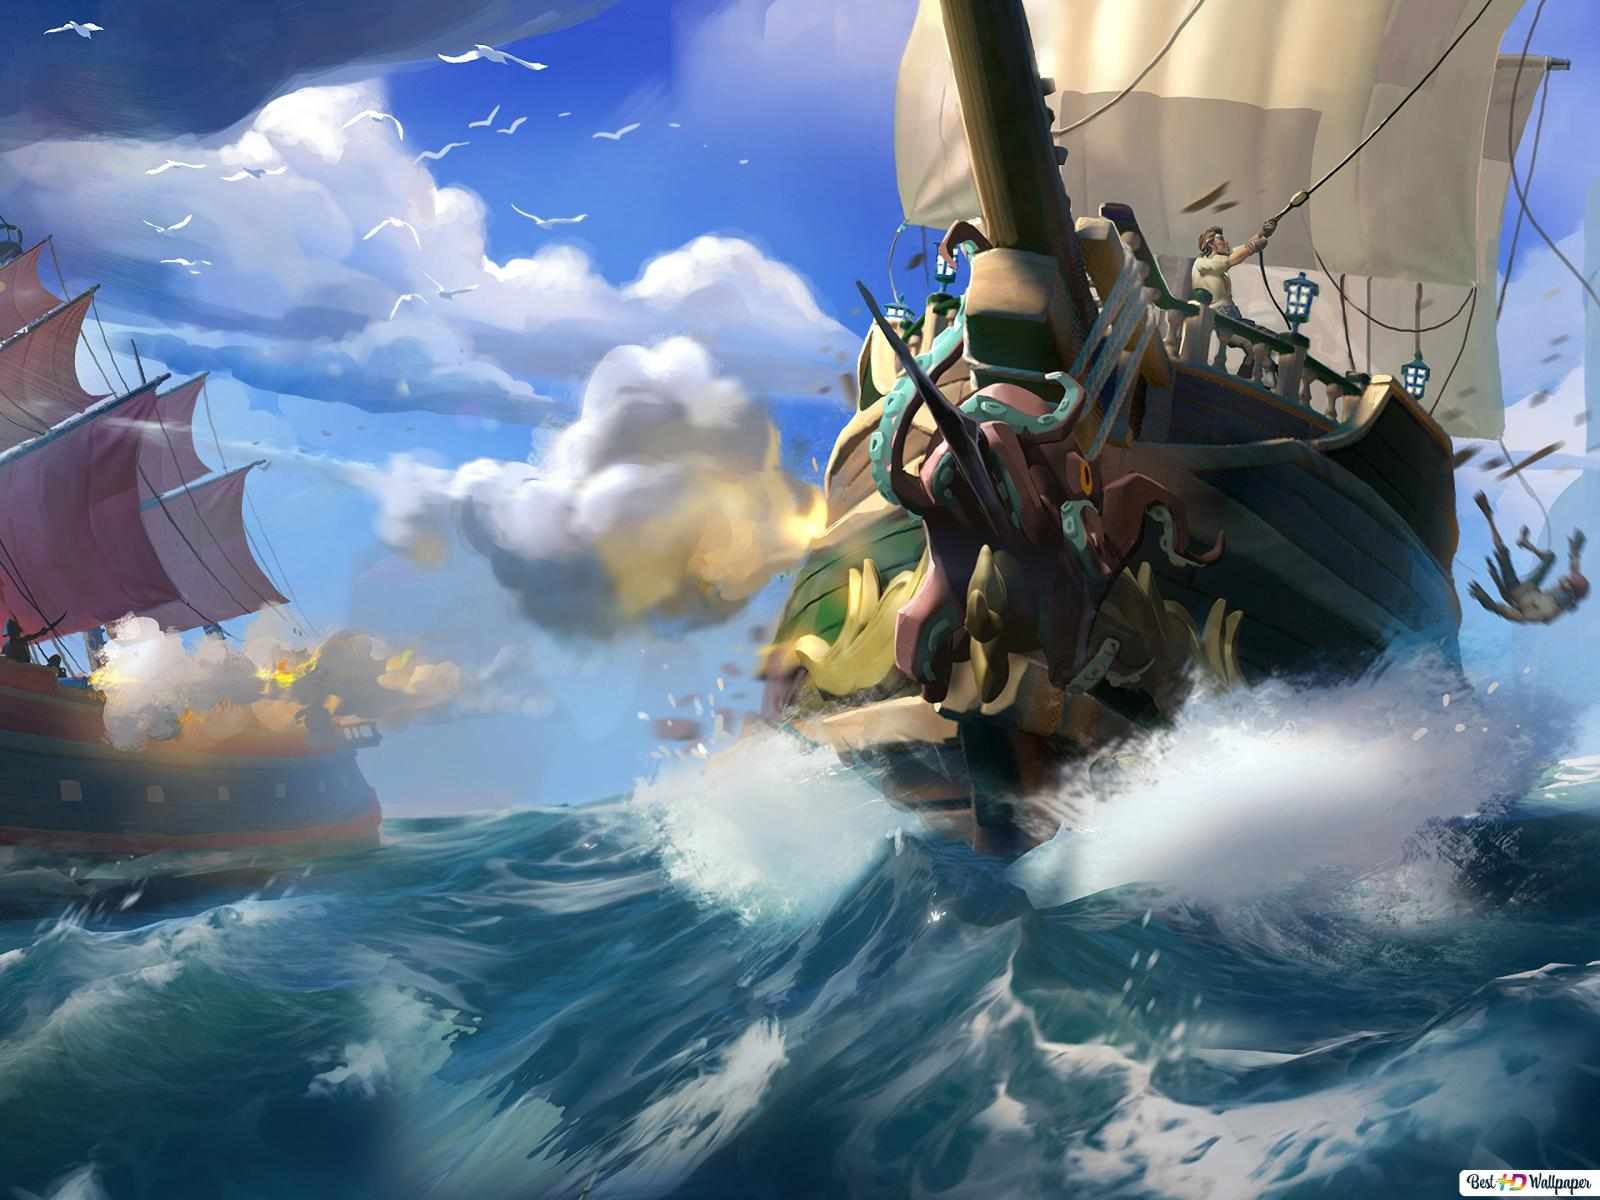 Download Best Sea Of Thieves Wallpapers Wallpapers